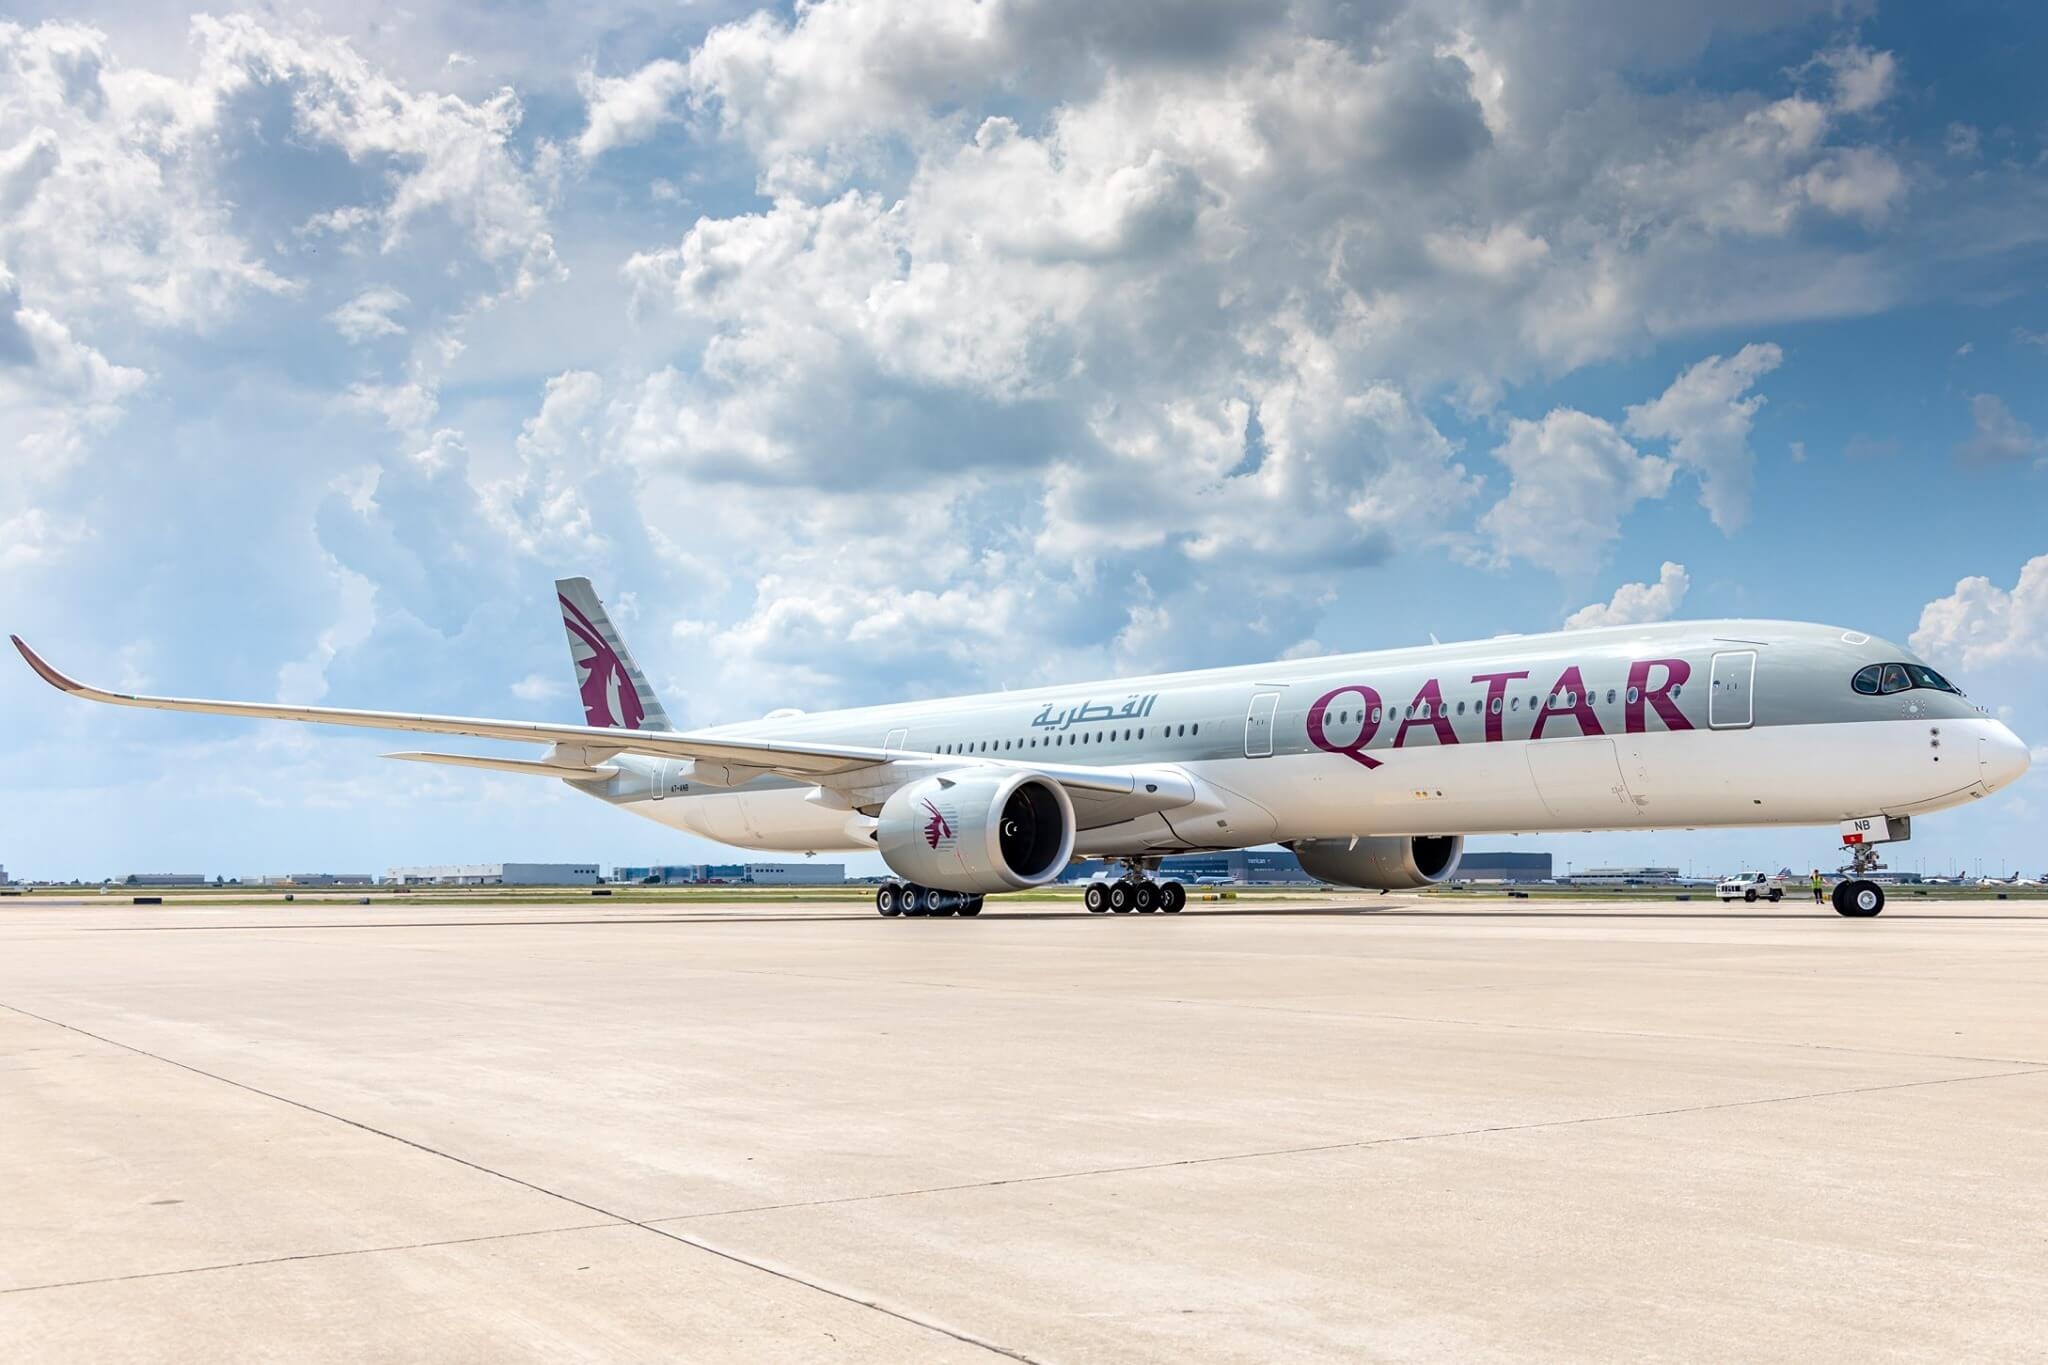 Qatar Airways to make 'substantial' job cuts Over Pandemic